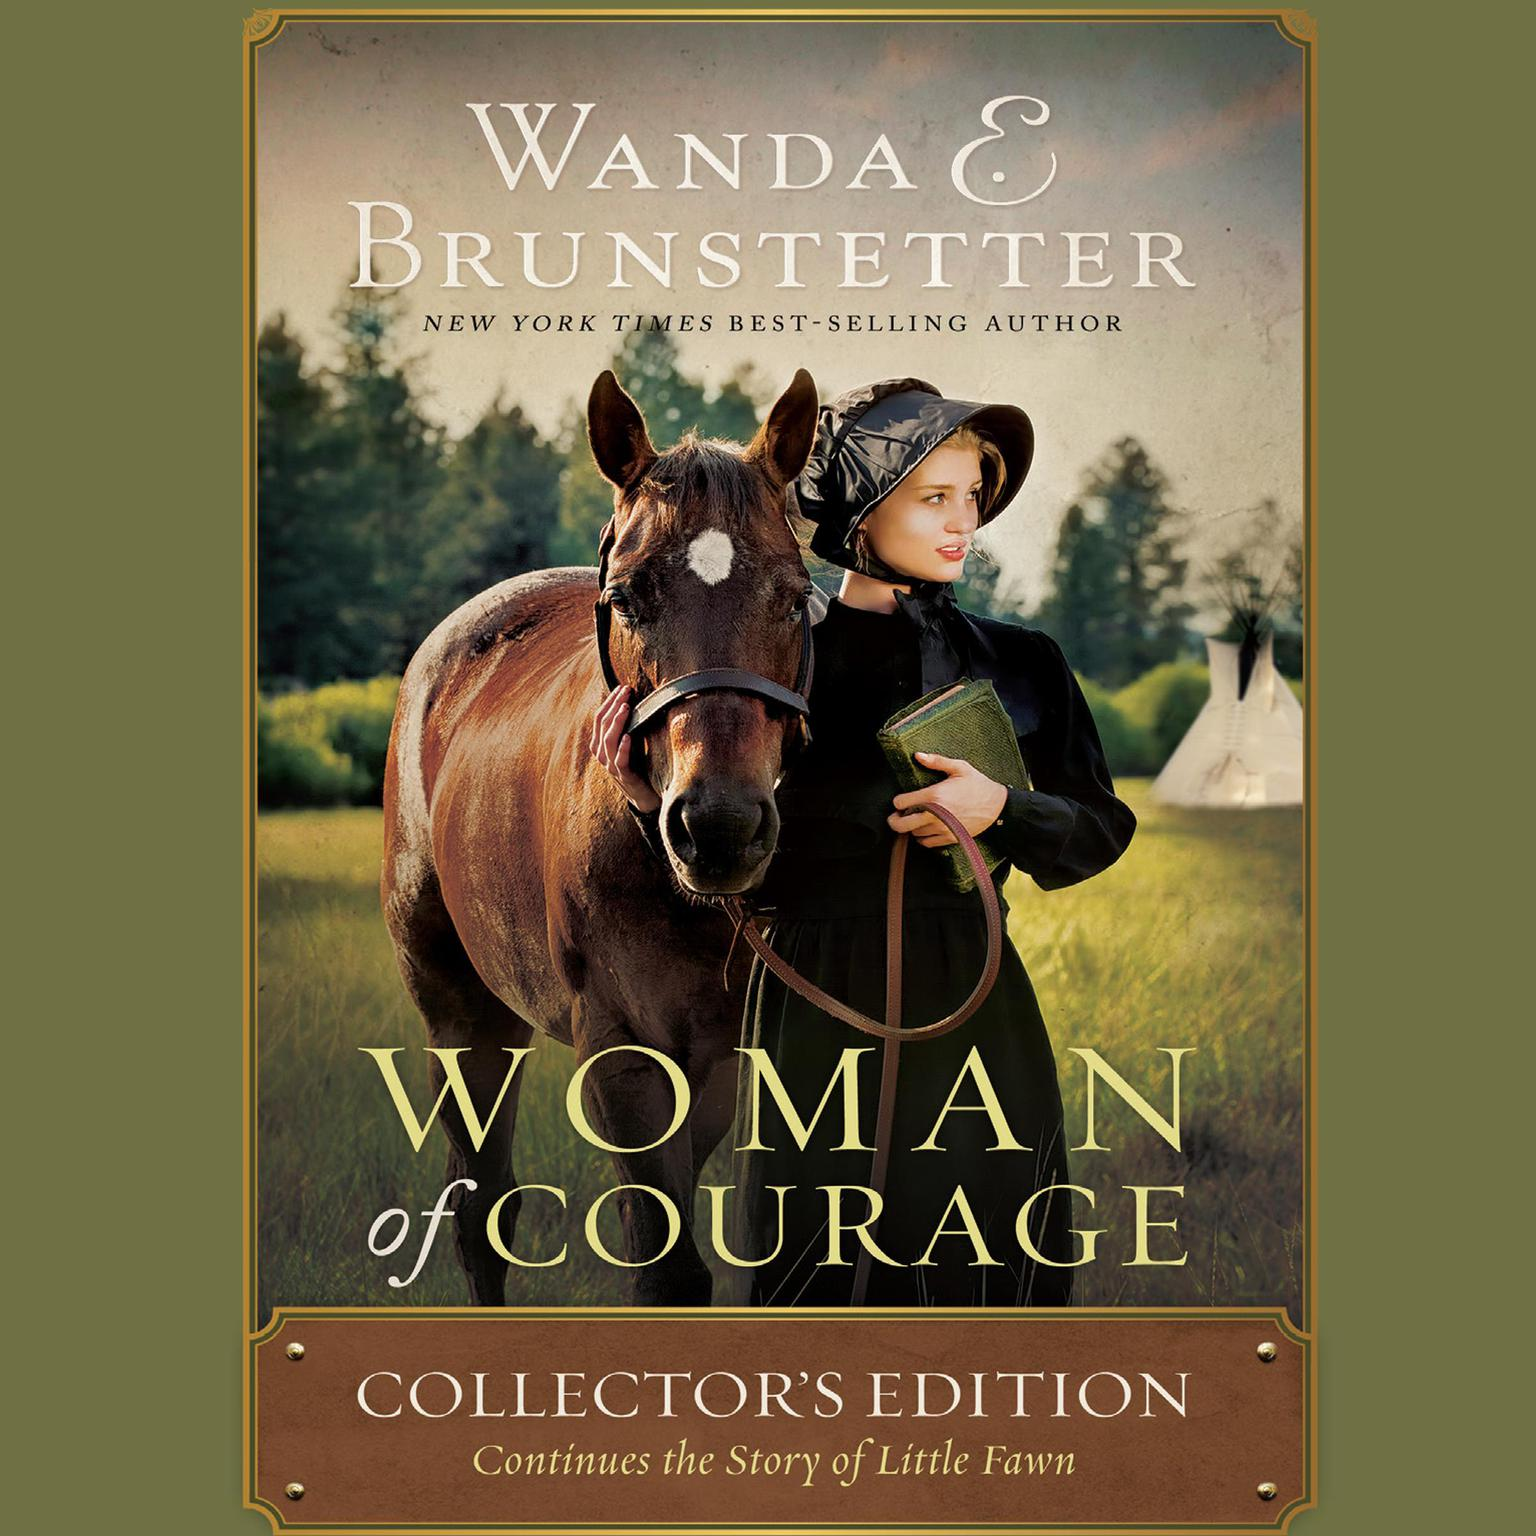 Printable Woman of Courage: Collector's Edition Continues the Story of Little Fawn Audiobook Cover Art